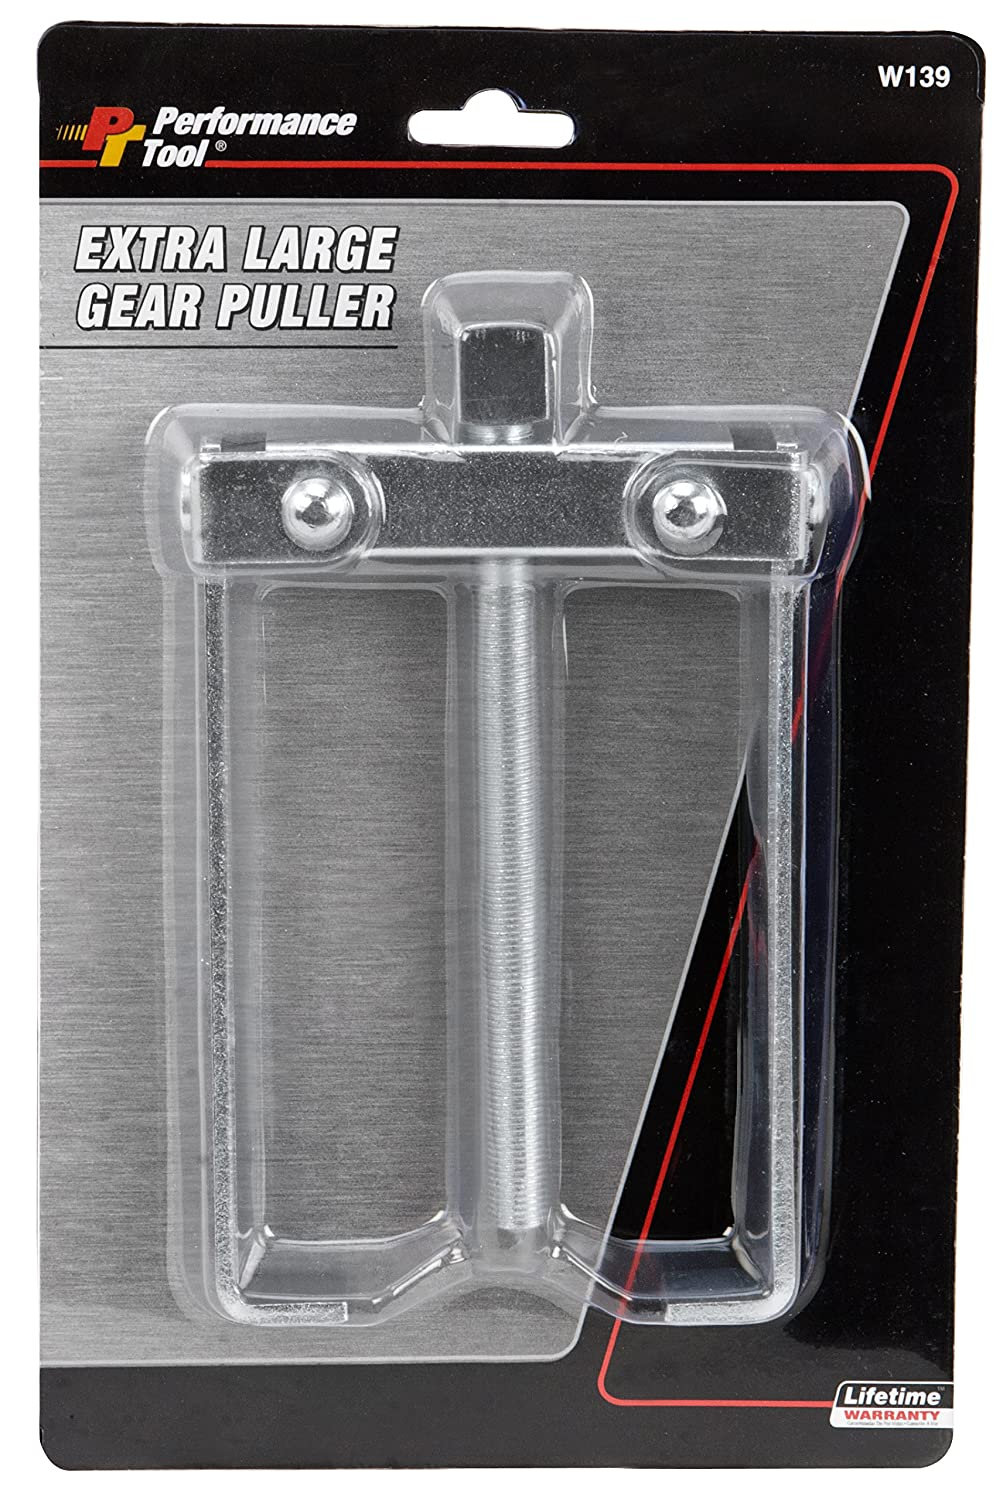 Gear Pullers Sears : Craftsman gear puller images